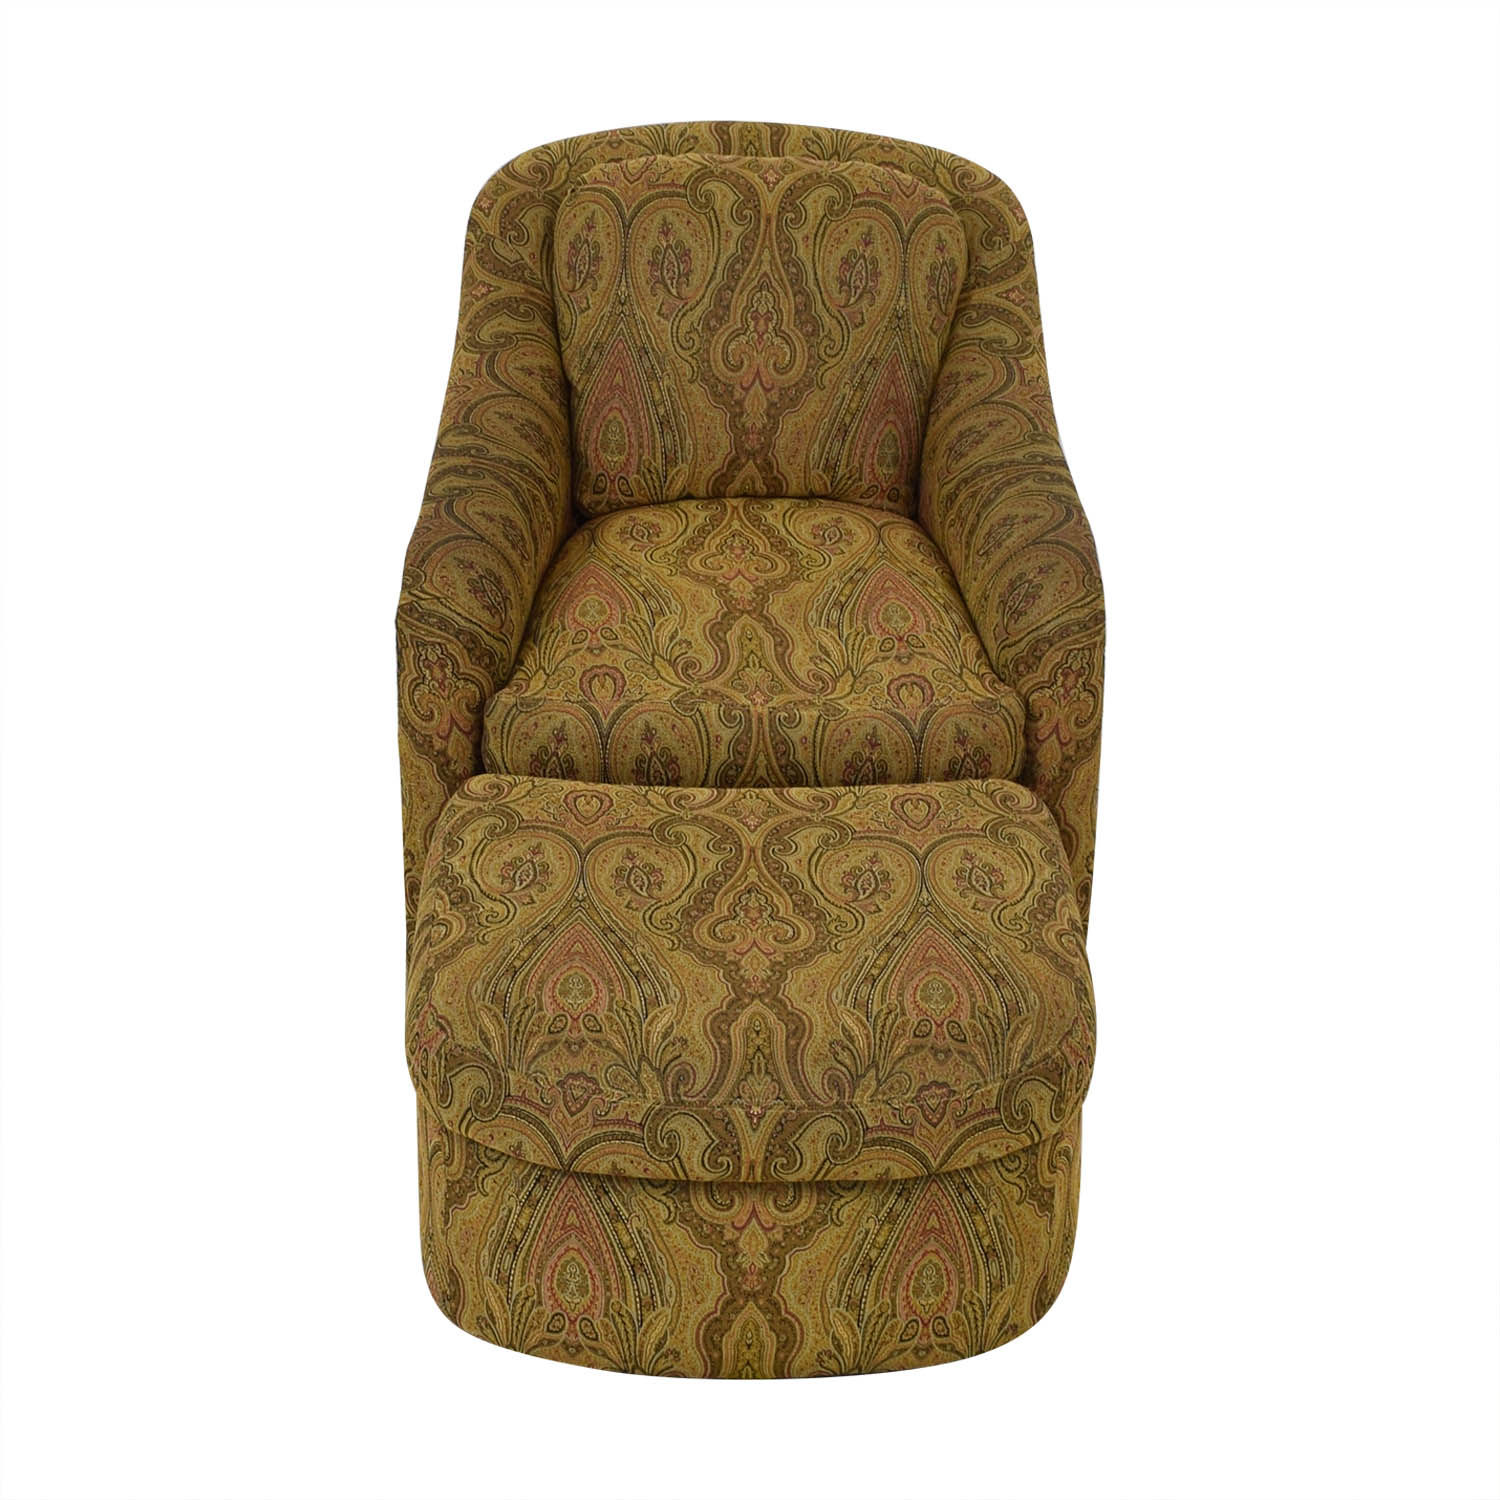 Admirable 85 Off Pennsylvania House Pennsylvania House Swivel Chair And Ottoman Chairs Pabps2019 Chair Design Images Pabps2019Com